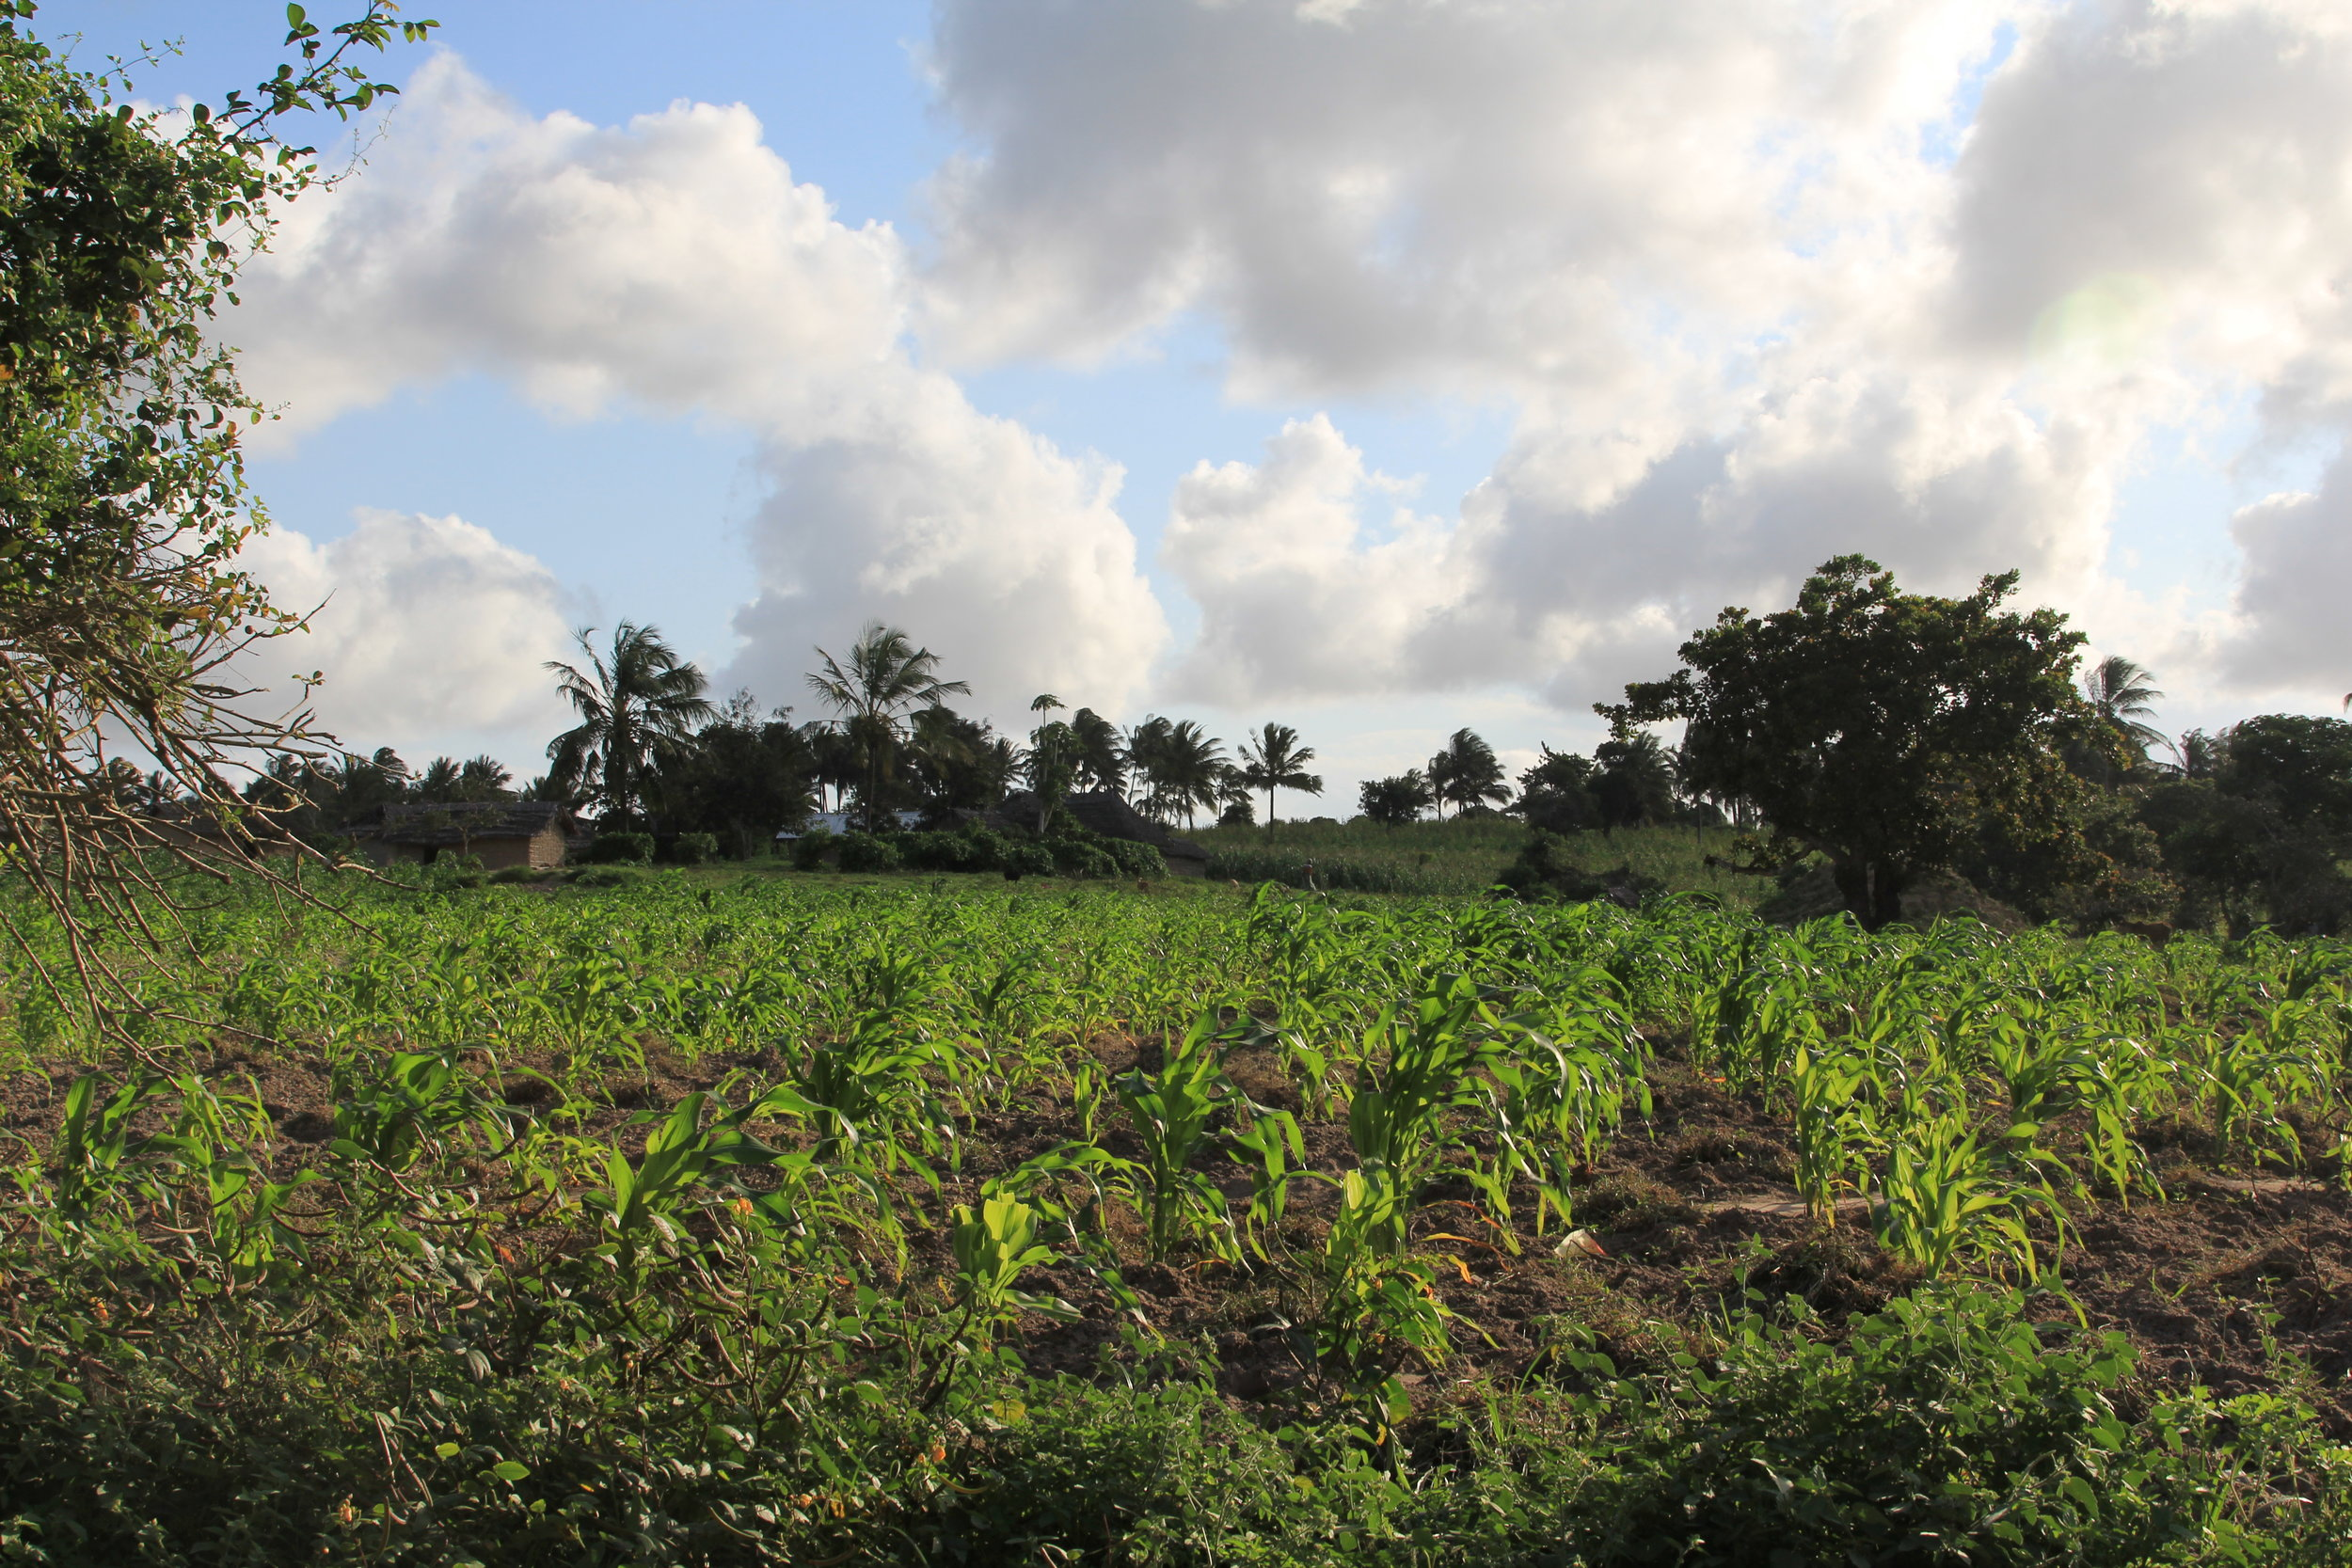 Maize crops in Birini, Coast, Kenya